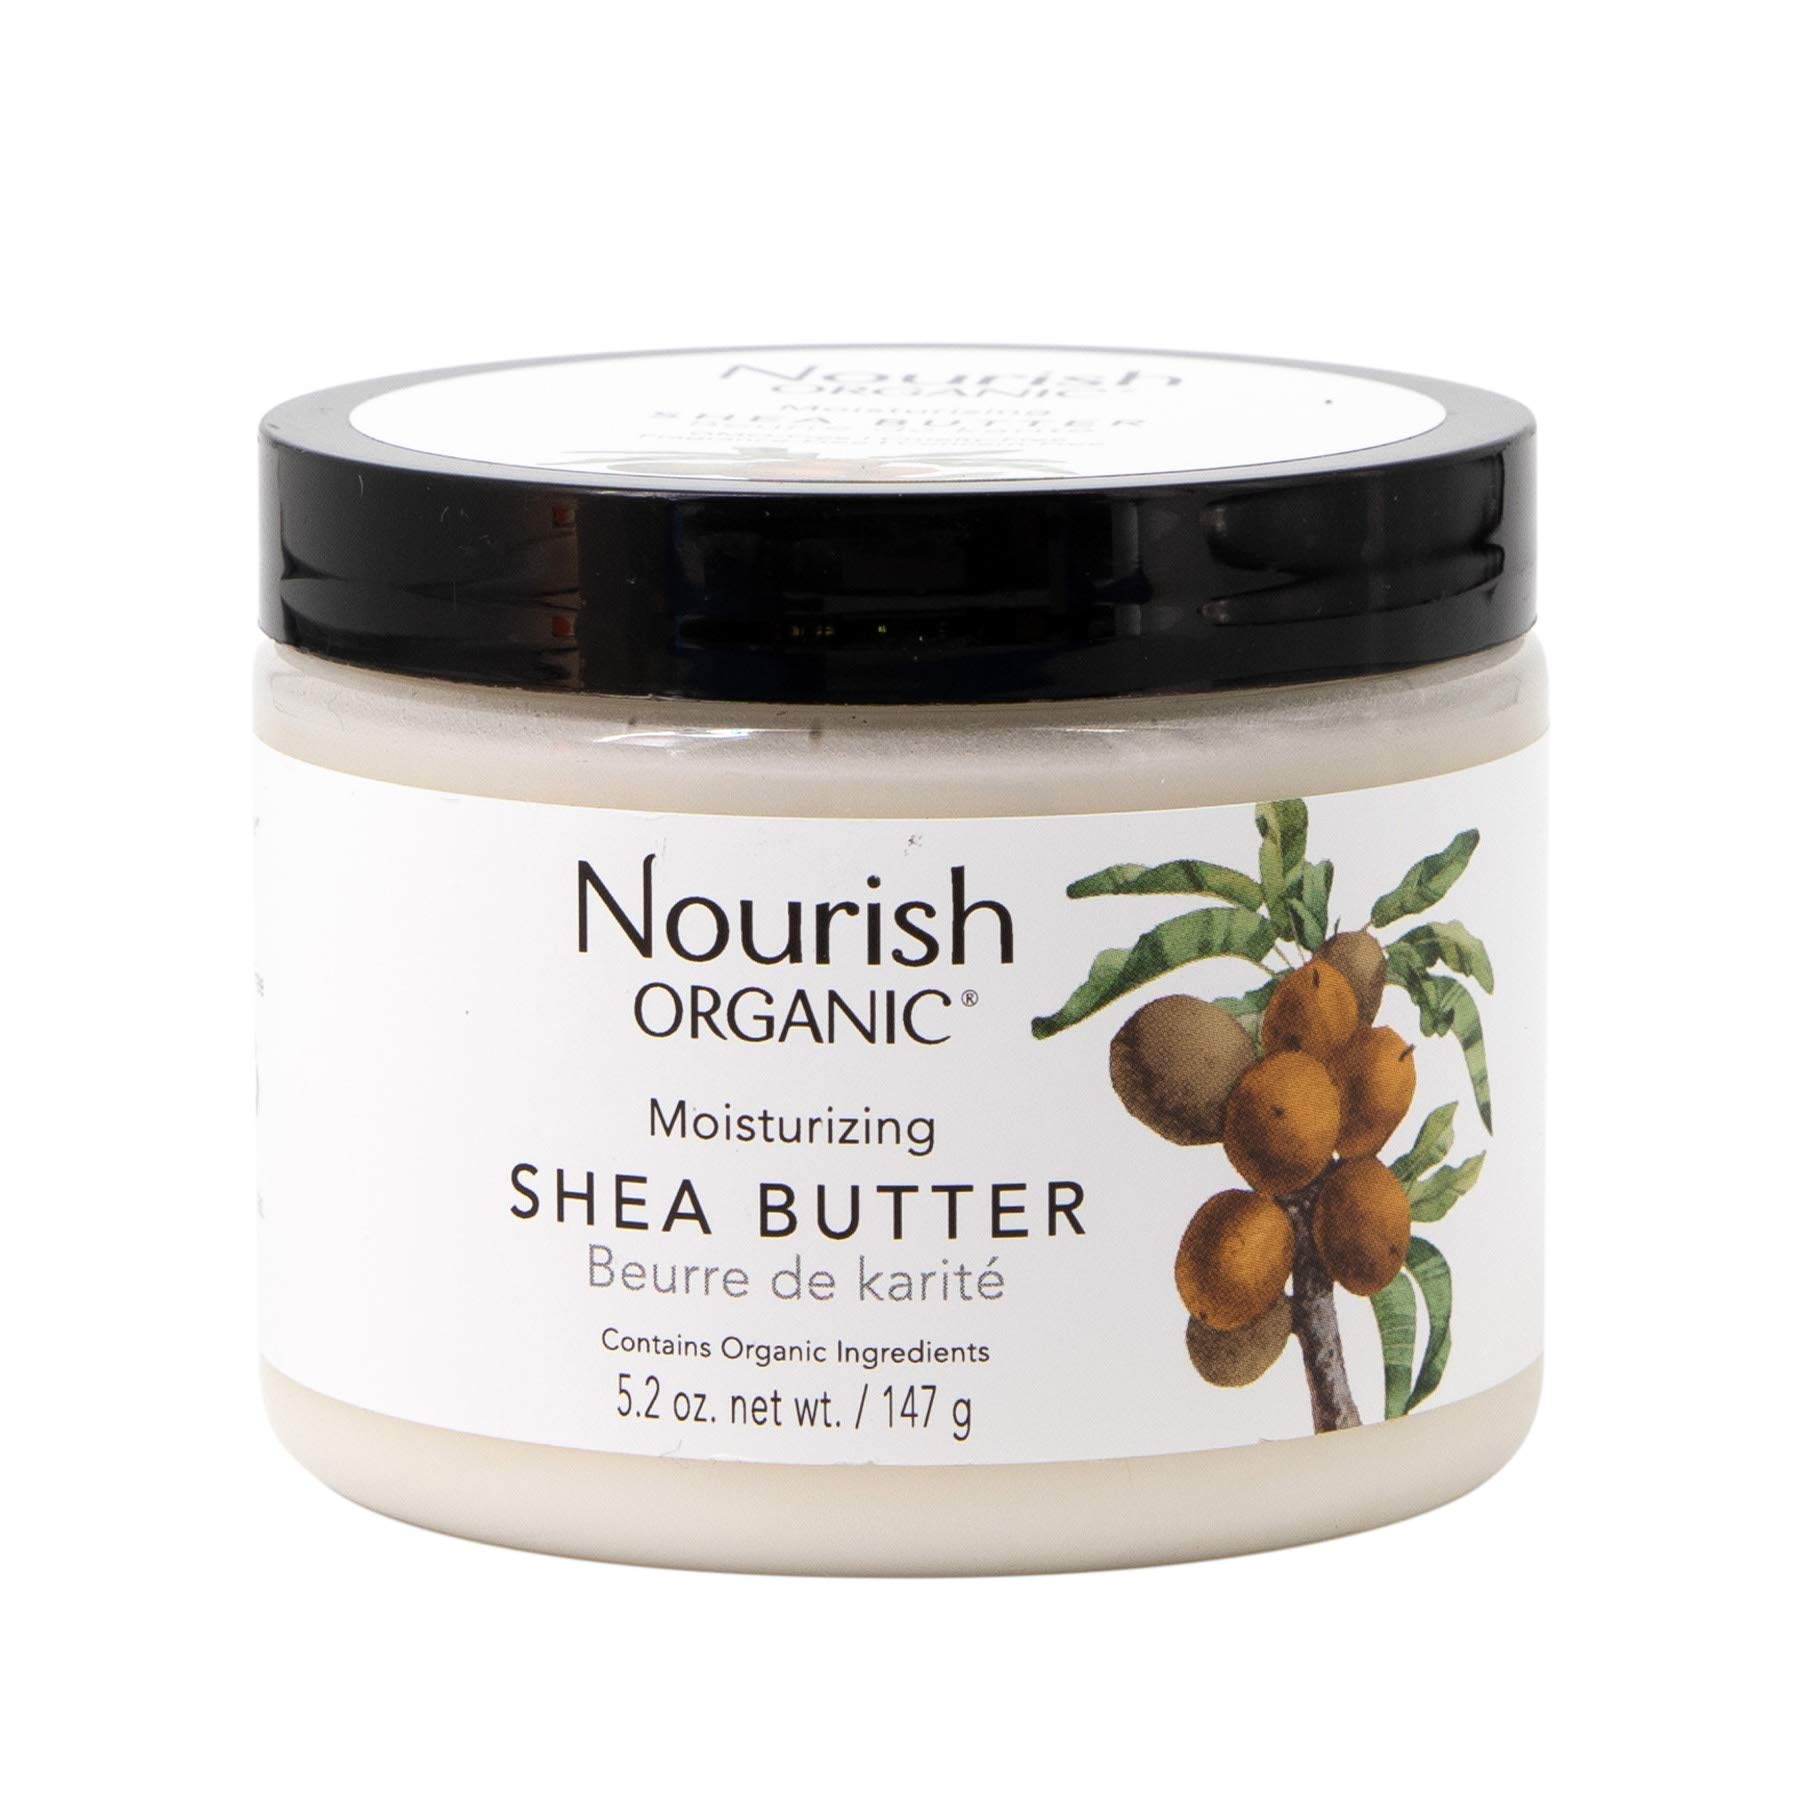 Nourish Organic Intensely Moisturizing Fair Trade Shea Butter, 5.2 Ounce (Packagin may vary)